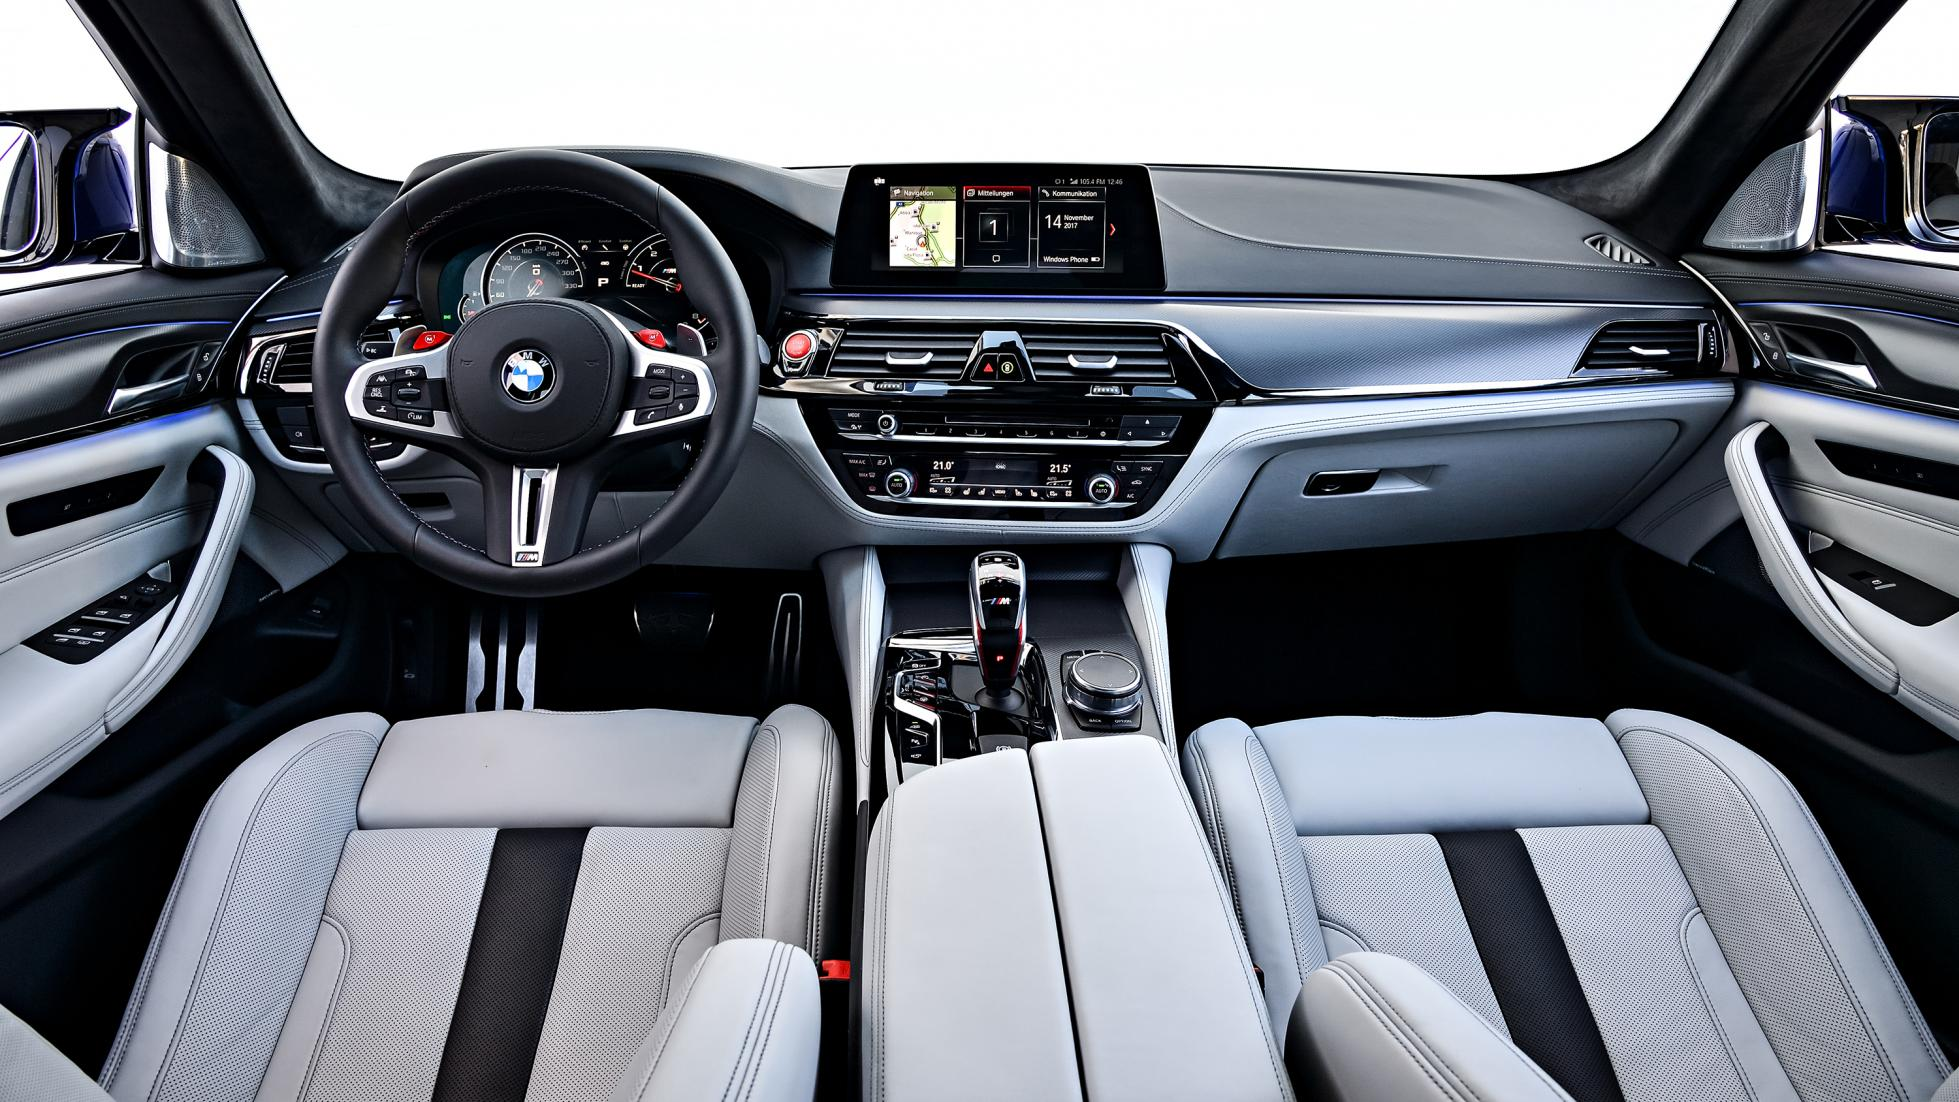 p90287011_highres_the-new-bmw-m5-11-20